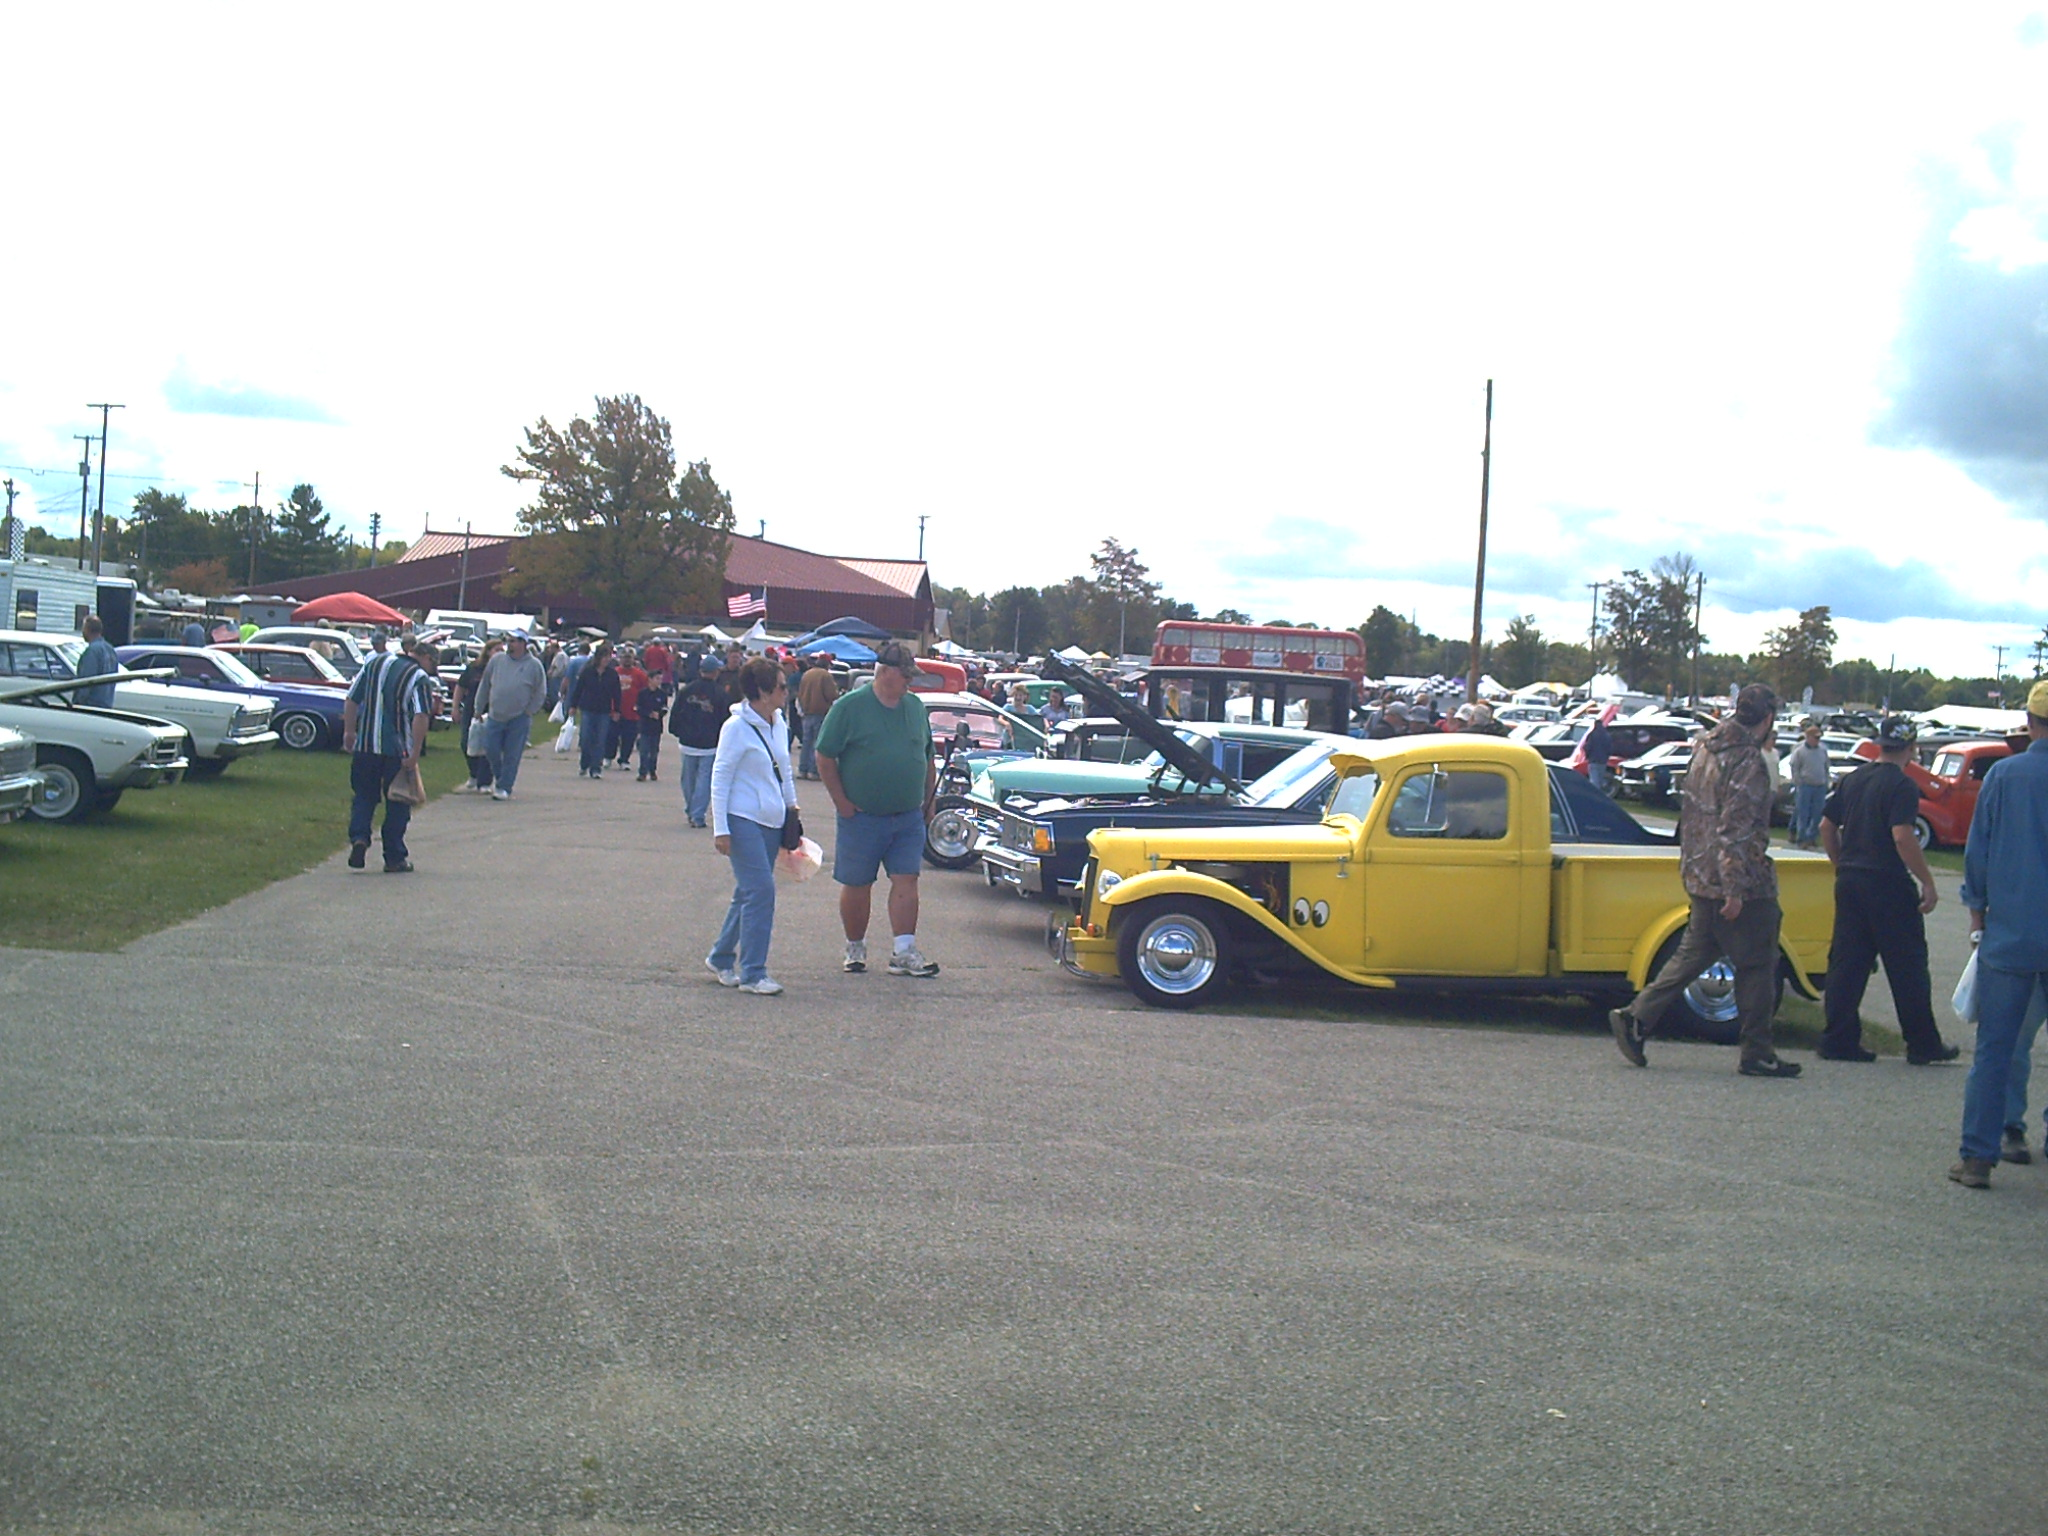 Click image for larger version  Name:Midland fall meet (22).JPG Views:55 Size:791.8 KB ID:85074